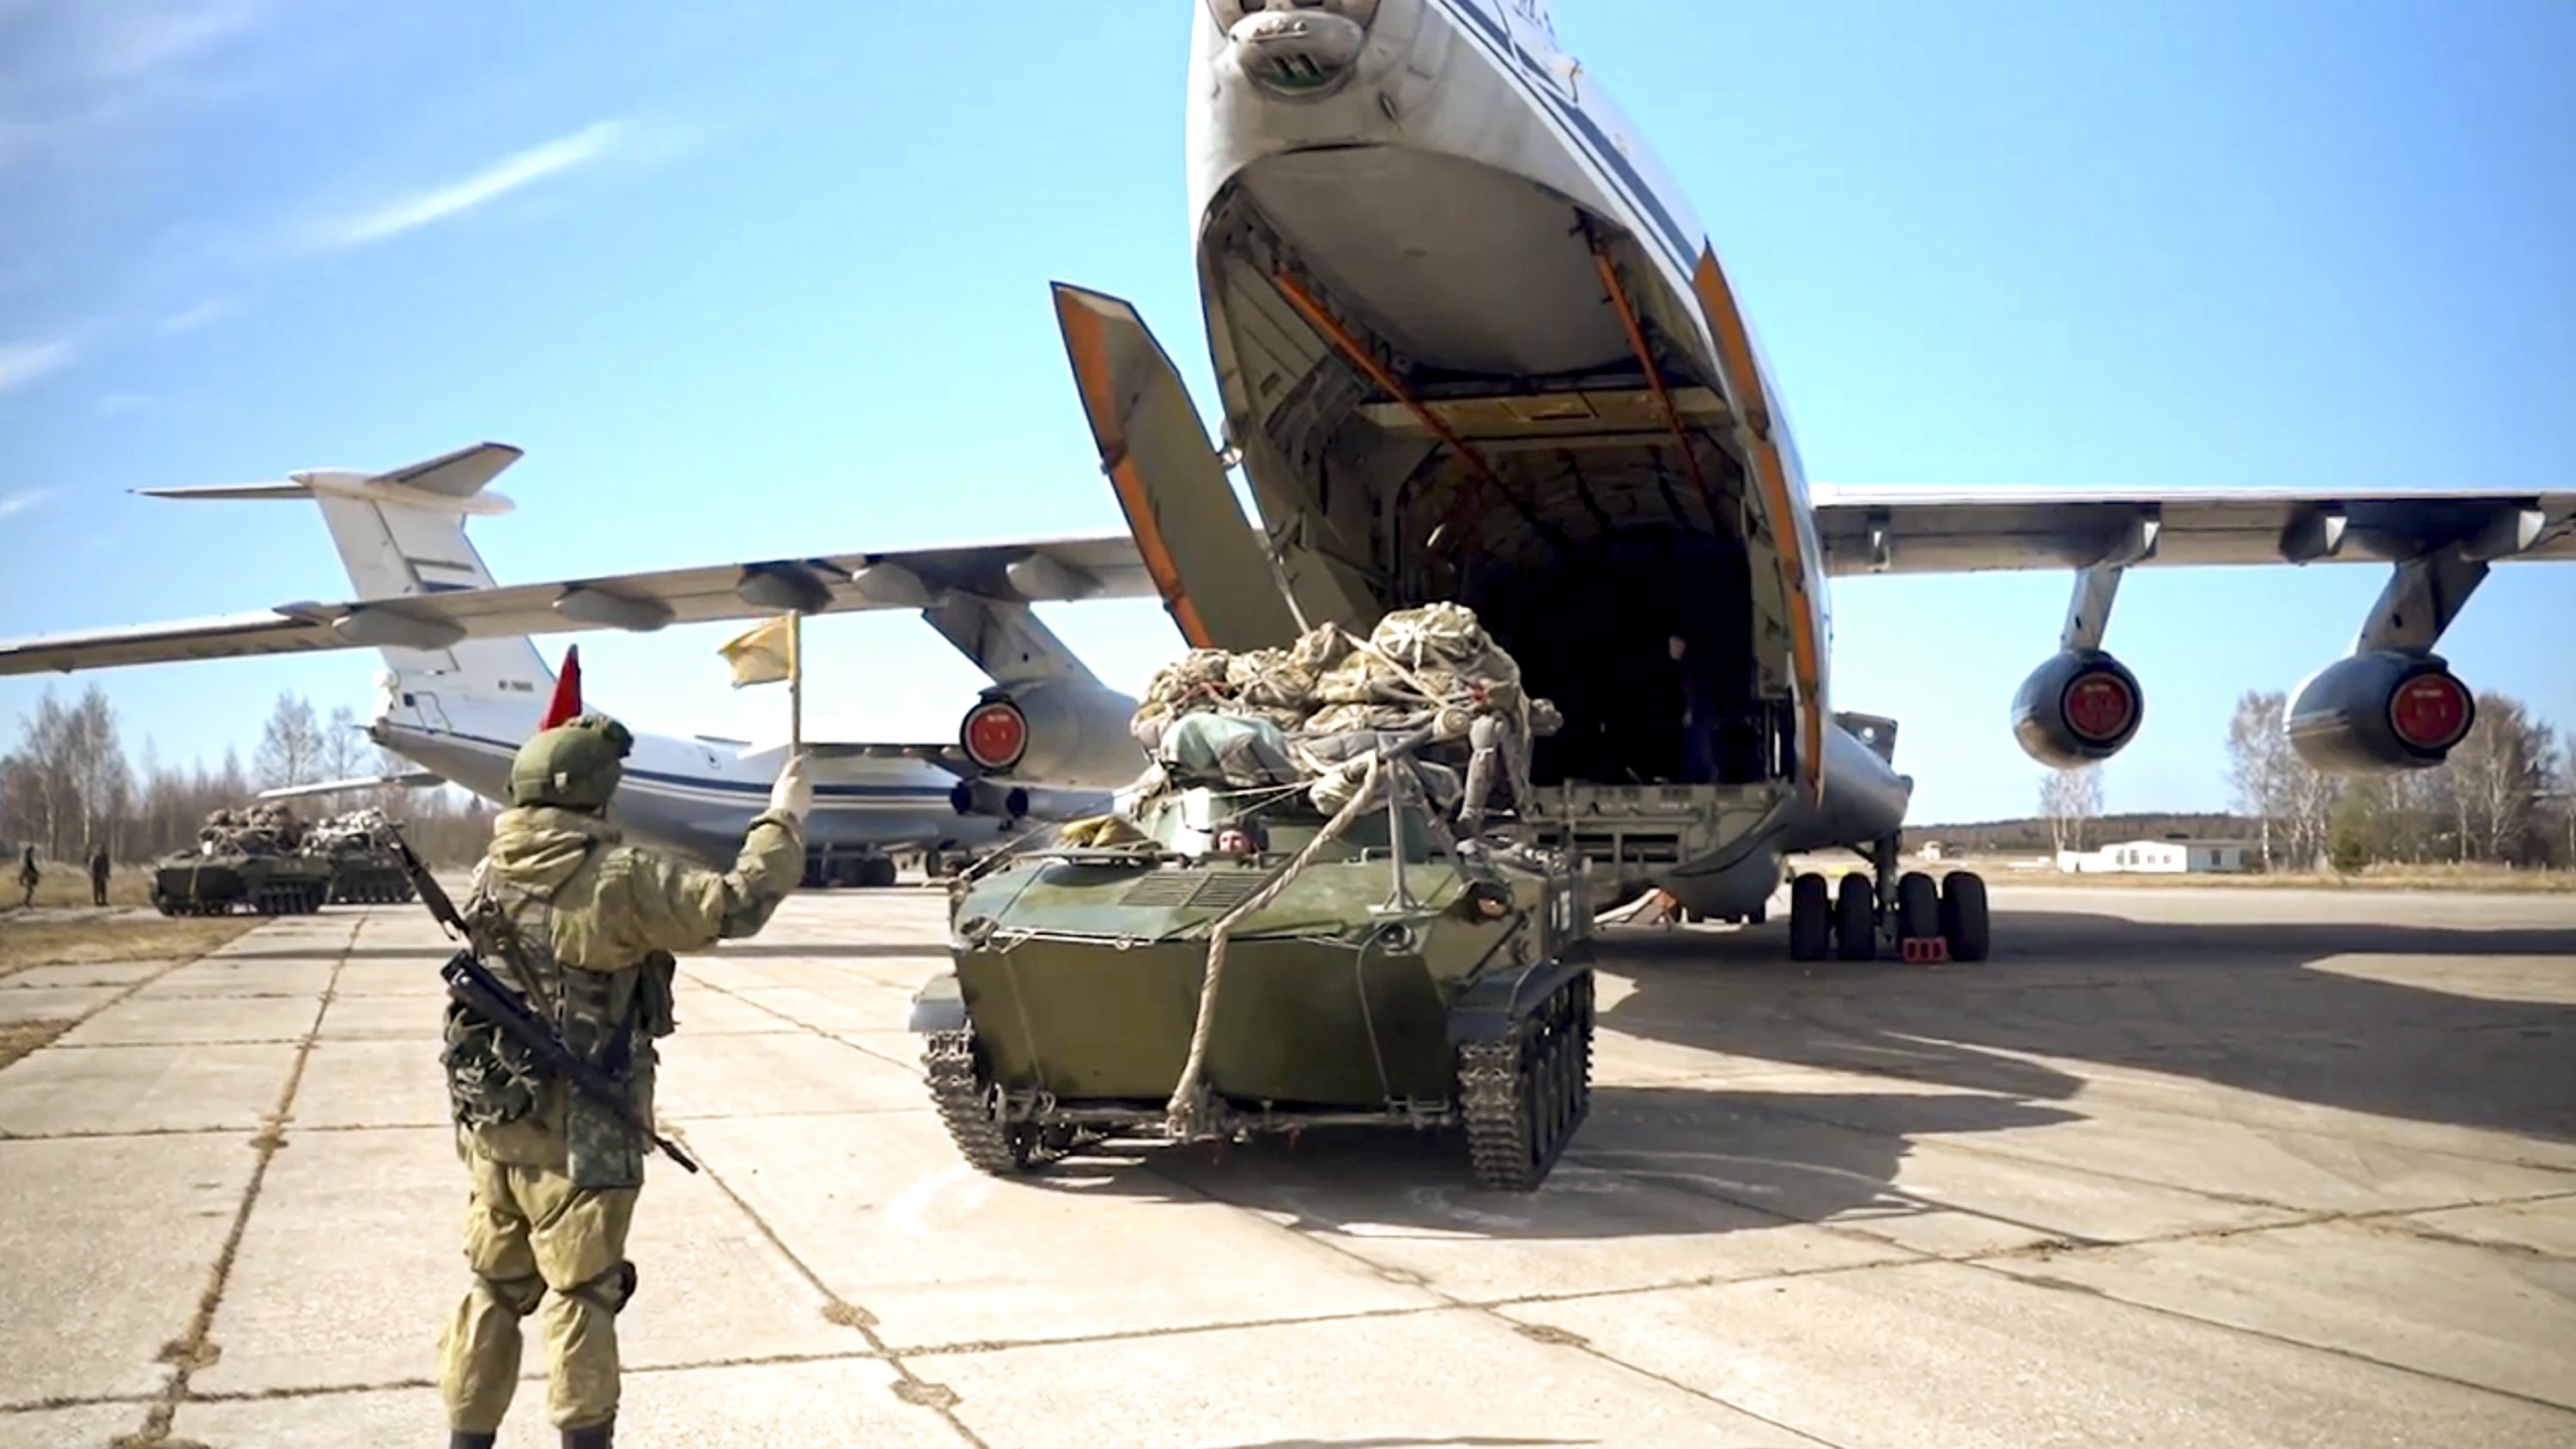 A Russian military vehicle preparing to be loaded into a plane for airborne drills during maneuvers in Crimea, photo released by Russian Defense Ministry Press Service on April 22, 2021. (Russian Defense Ministry Press Service via AP)